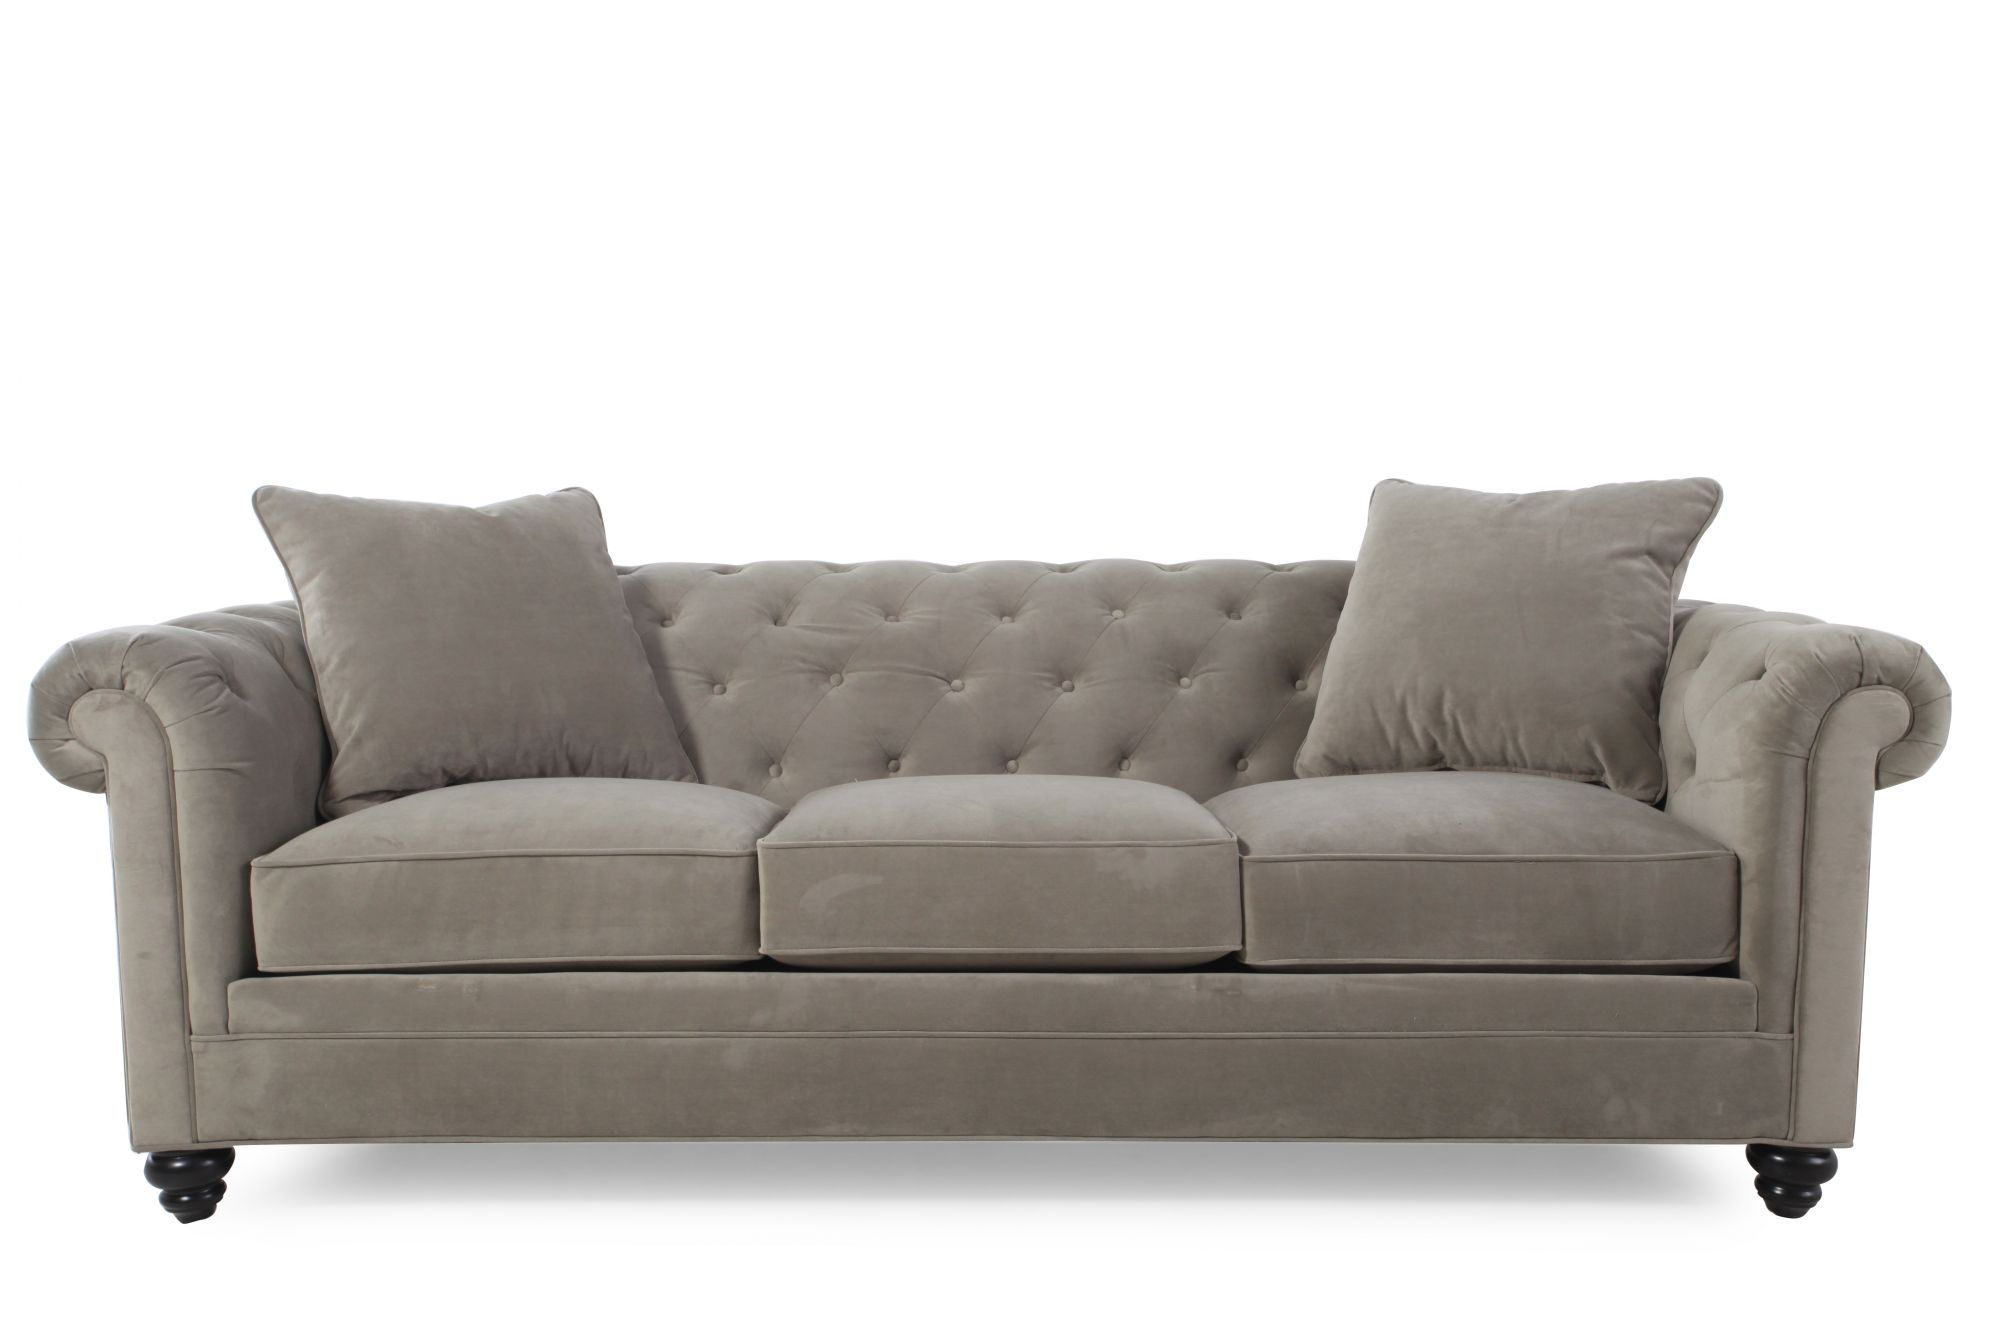 Jonathan Louis - Studio - Sofa - Jordanu0027s Furniture Thinking in navy | for Becky | Pinterest | Living rooms Sofa sleeper and Loveseats  sc 1 st  Pinterest : jonathan louis burton sectional - Sectionals, Sofas & Couches